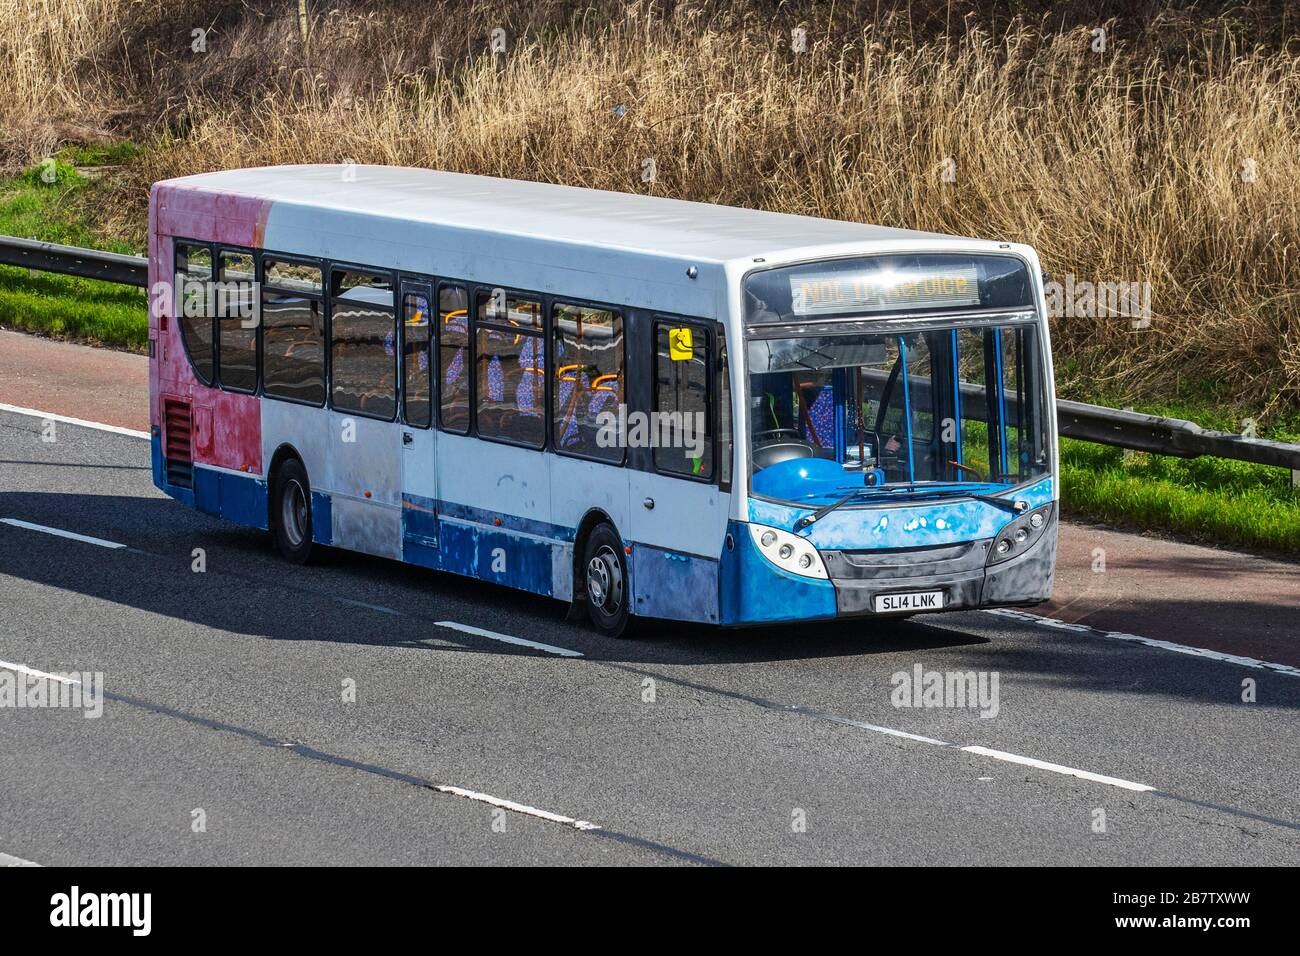 SL14LNK multi-coloured Alexander Dennis Enviro; barn find vehicle restoration project. UK Vehicular traffic derelict condition, old collectible vintage classic transport, single decker old bus, veteran classics on the 3 lane M6 Motorway highway. Stock Photo